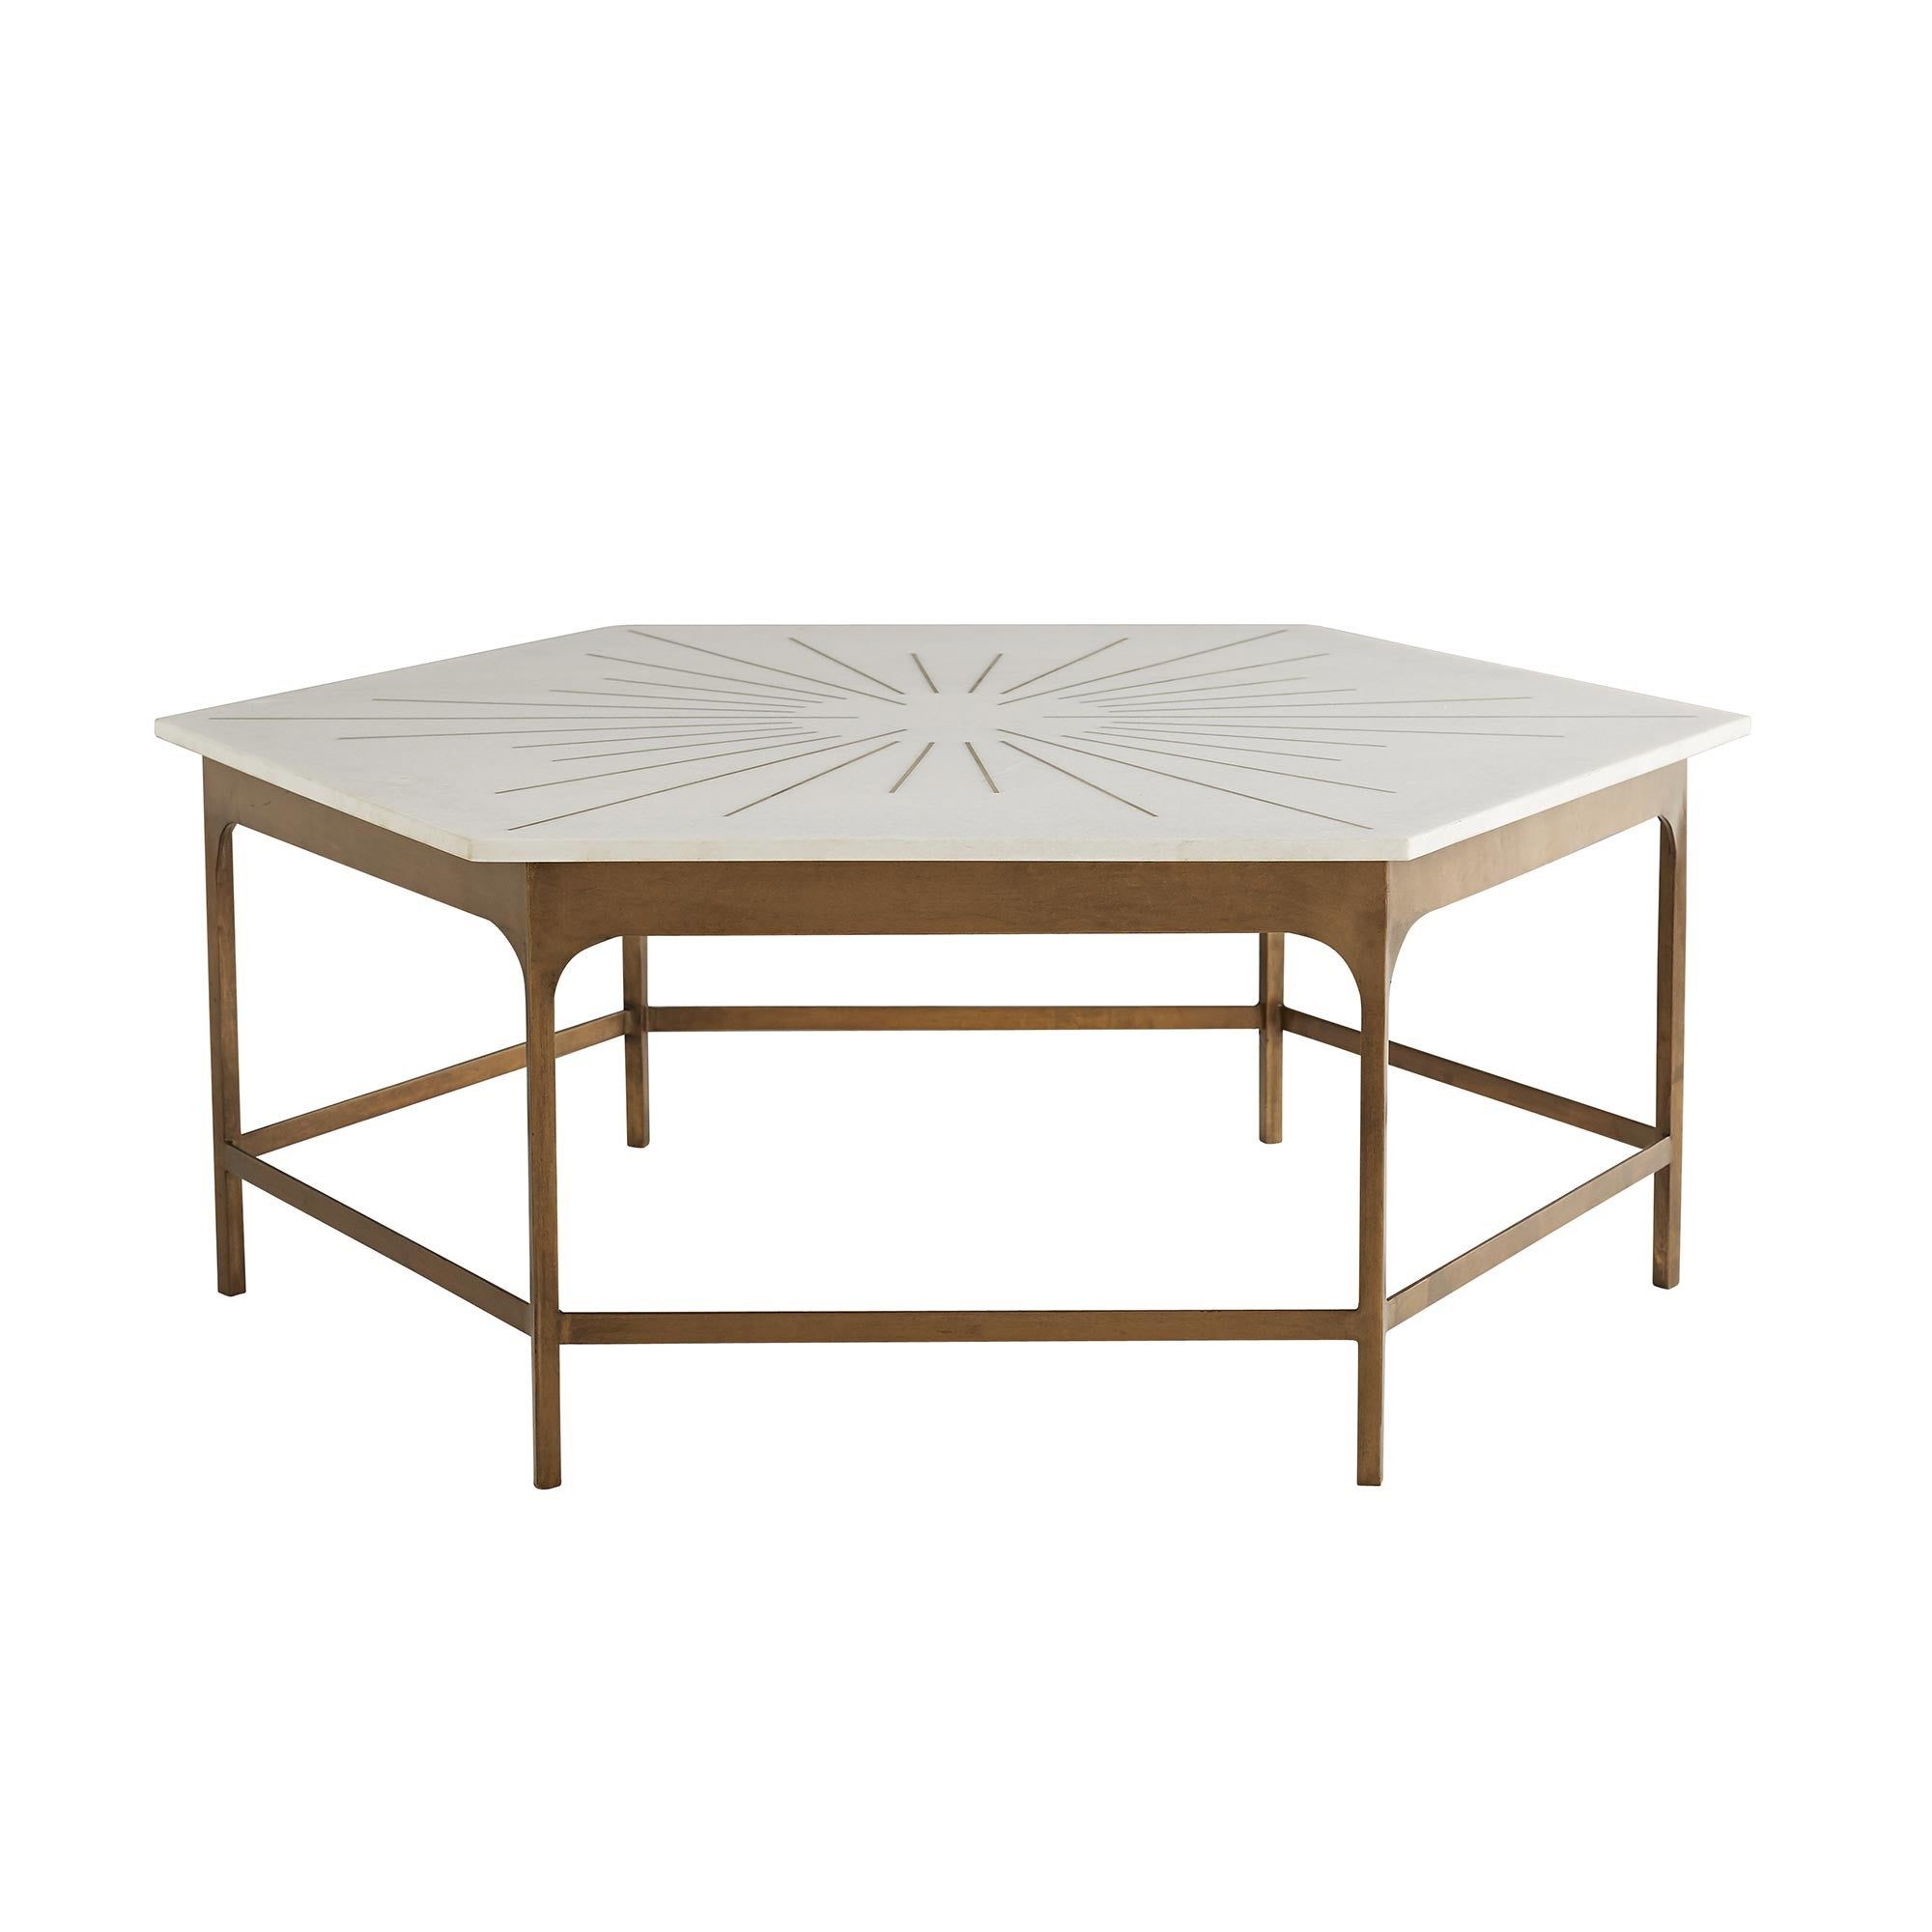 Hexagonal White Marble Coffee Table Handcrafted With Brass Inlay For Sale  At 1stdibs